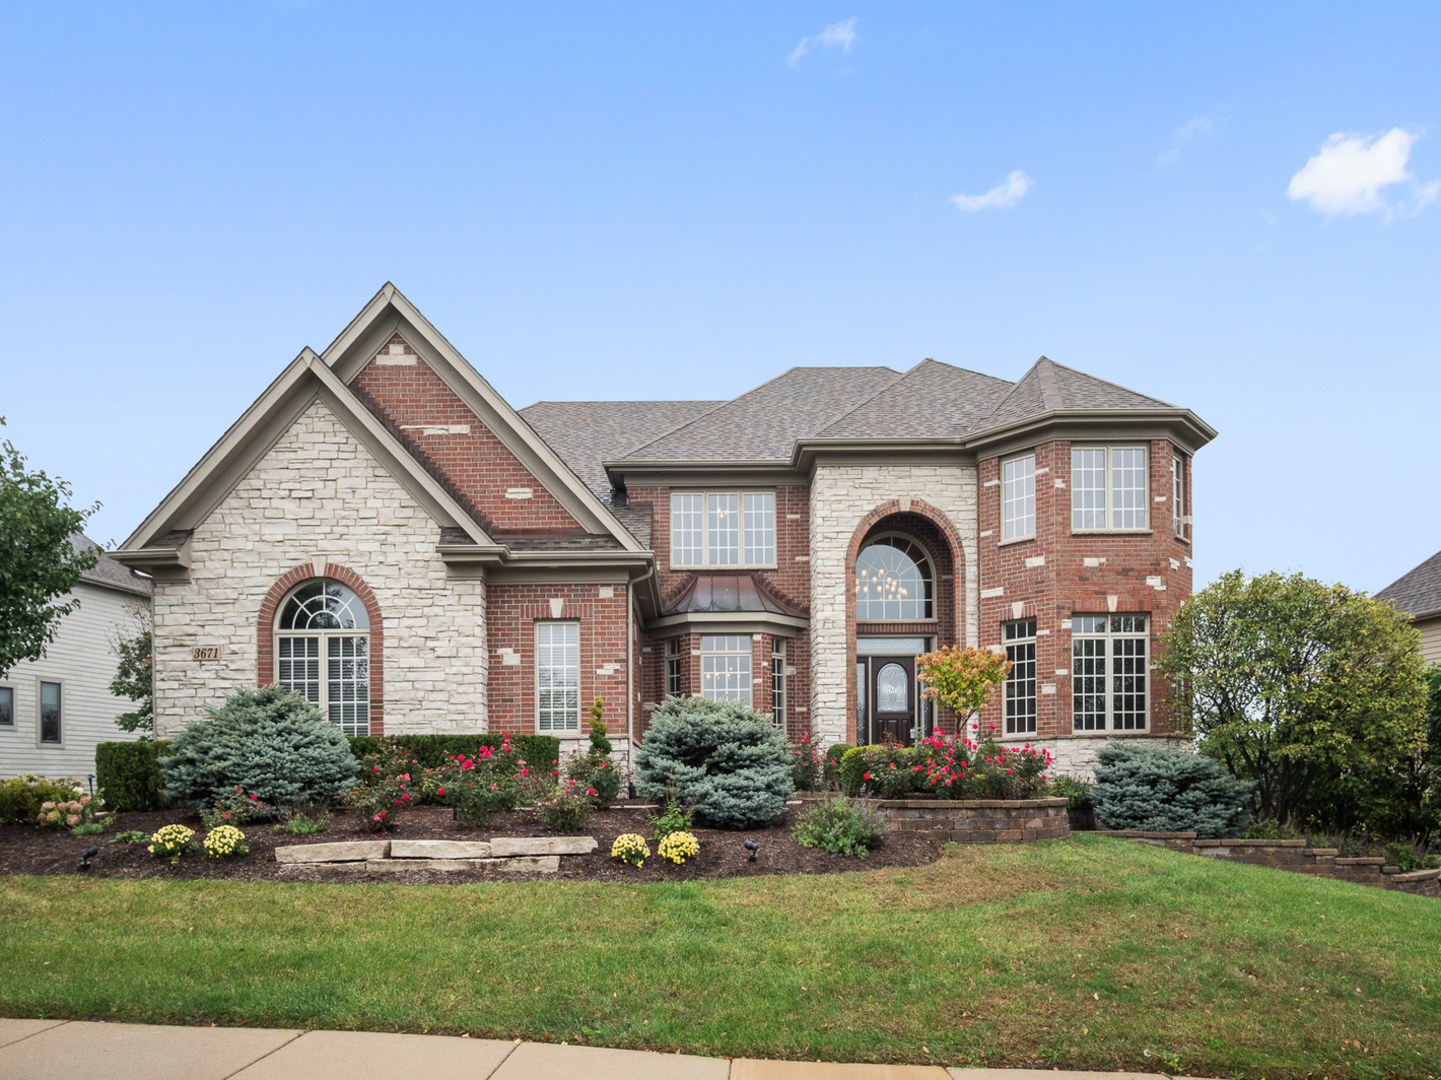 3671 Peregrine Way, one of homes for sale in Elgin